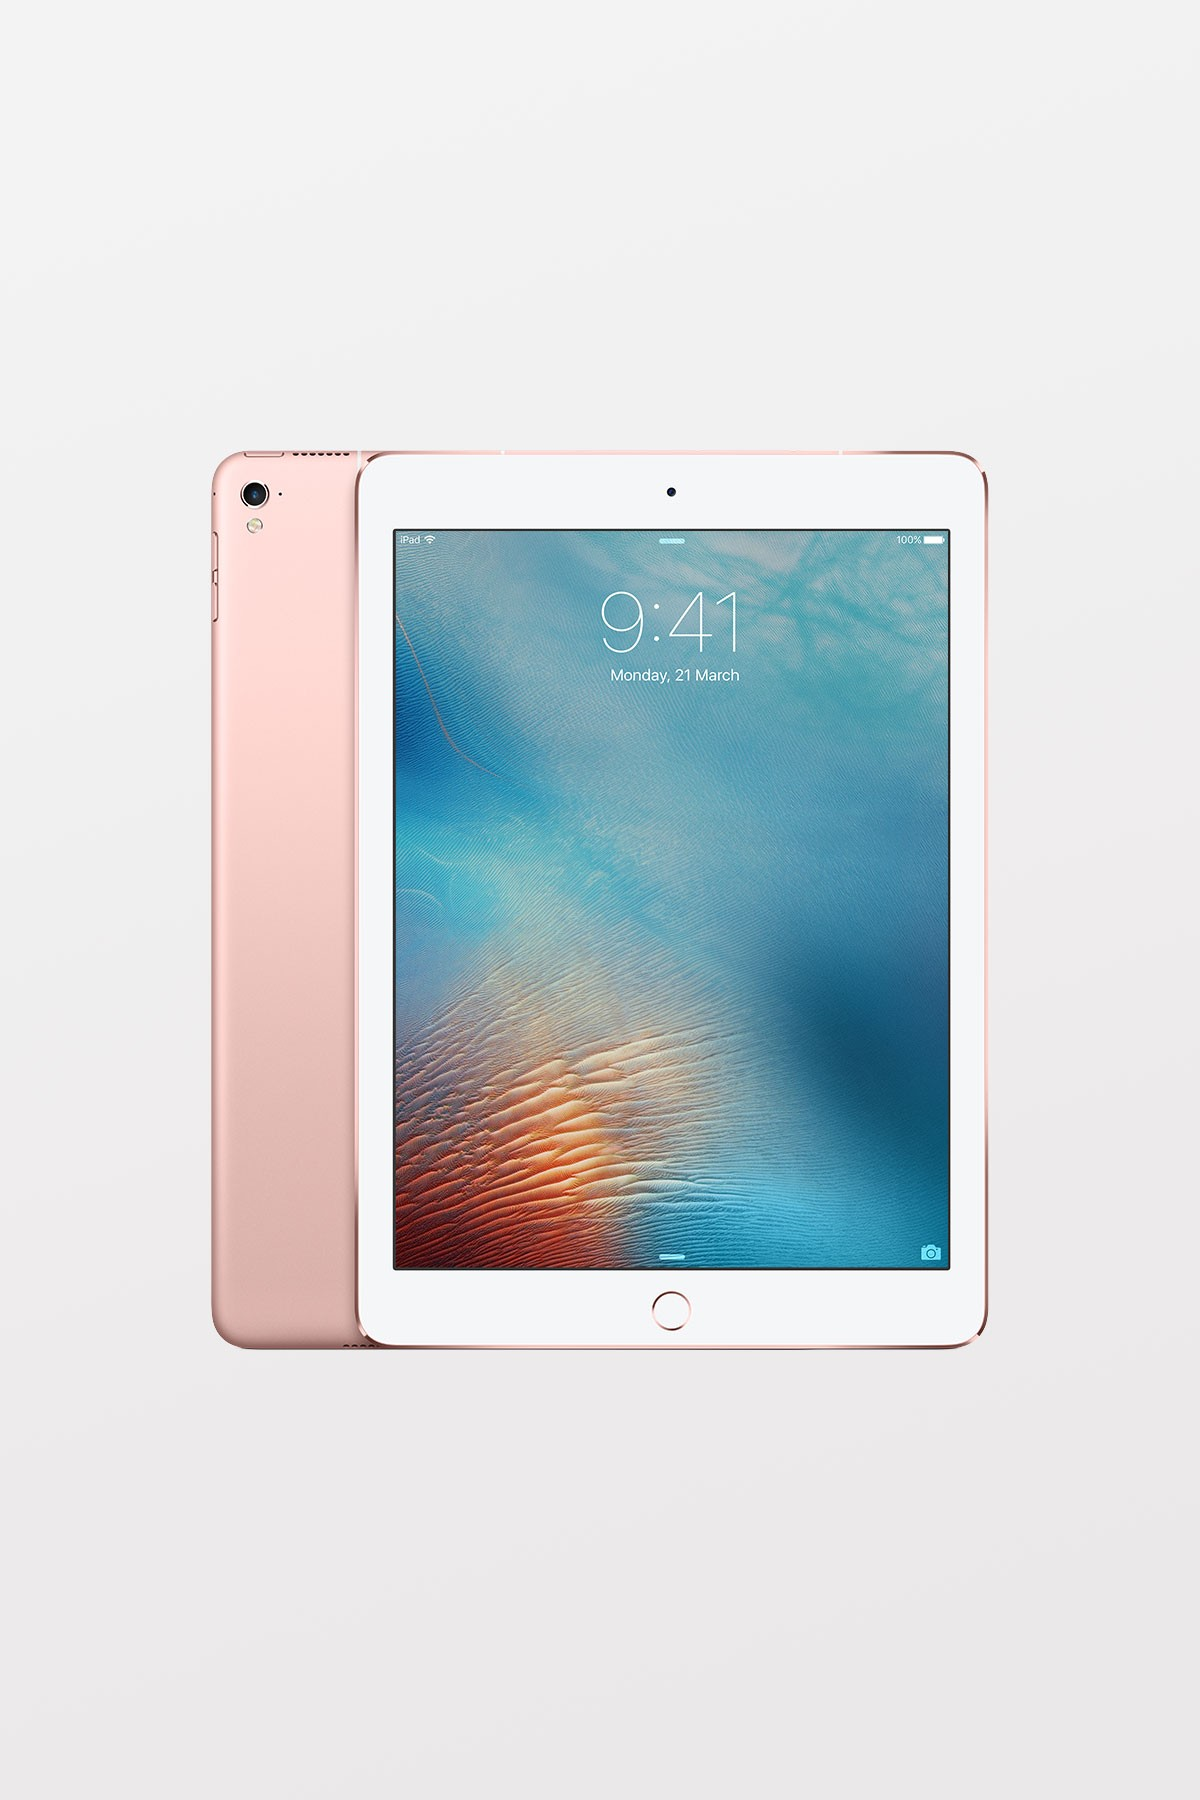 Apple iPad Pro 9.7-inch Wi-Fi Cellular 128GB - Rose Gold - Refurbished